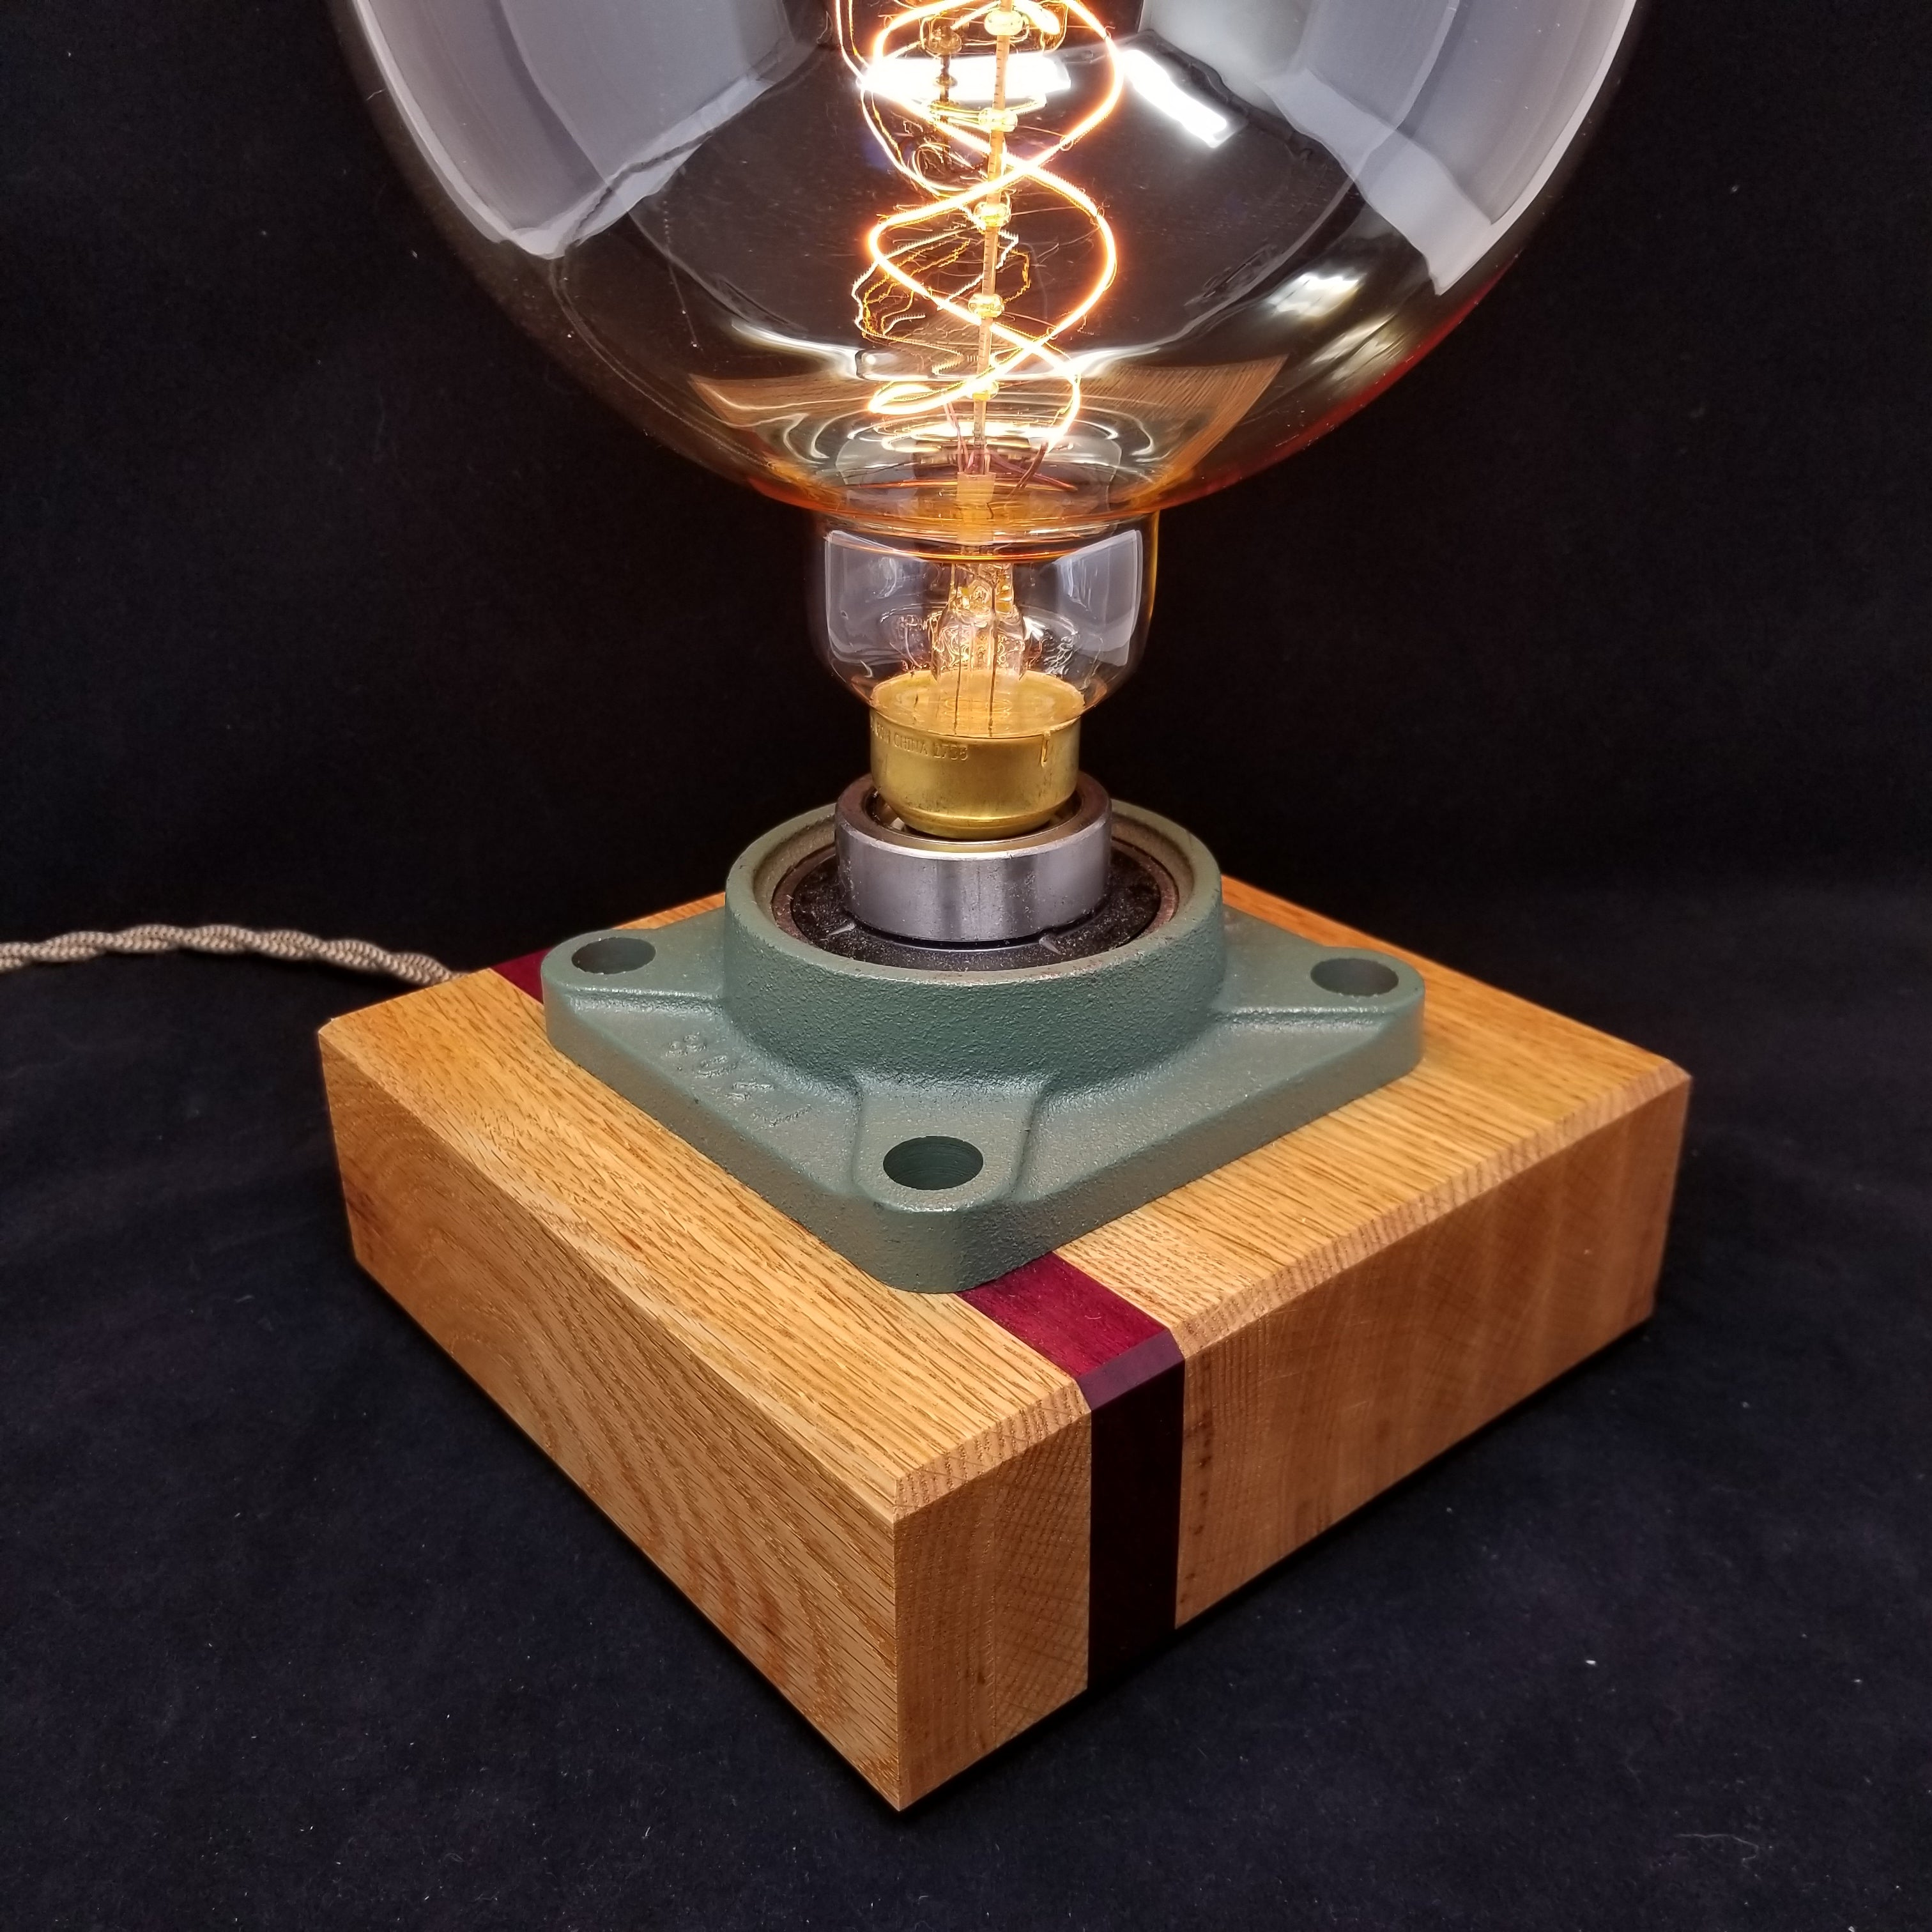 'The Big Kahuna' Touch Lamp